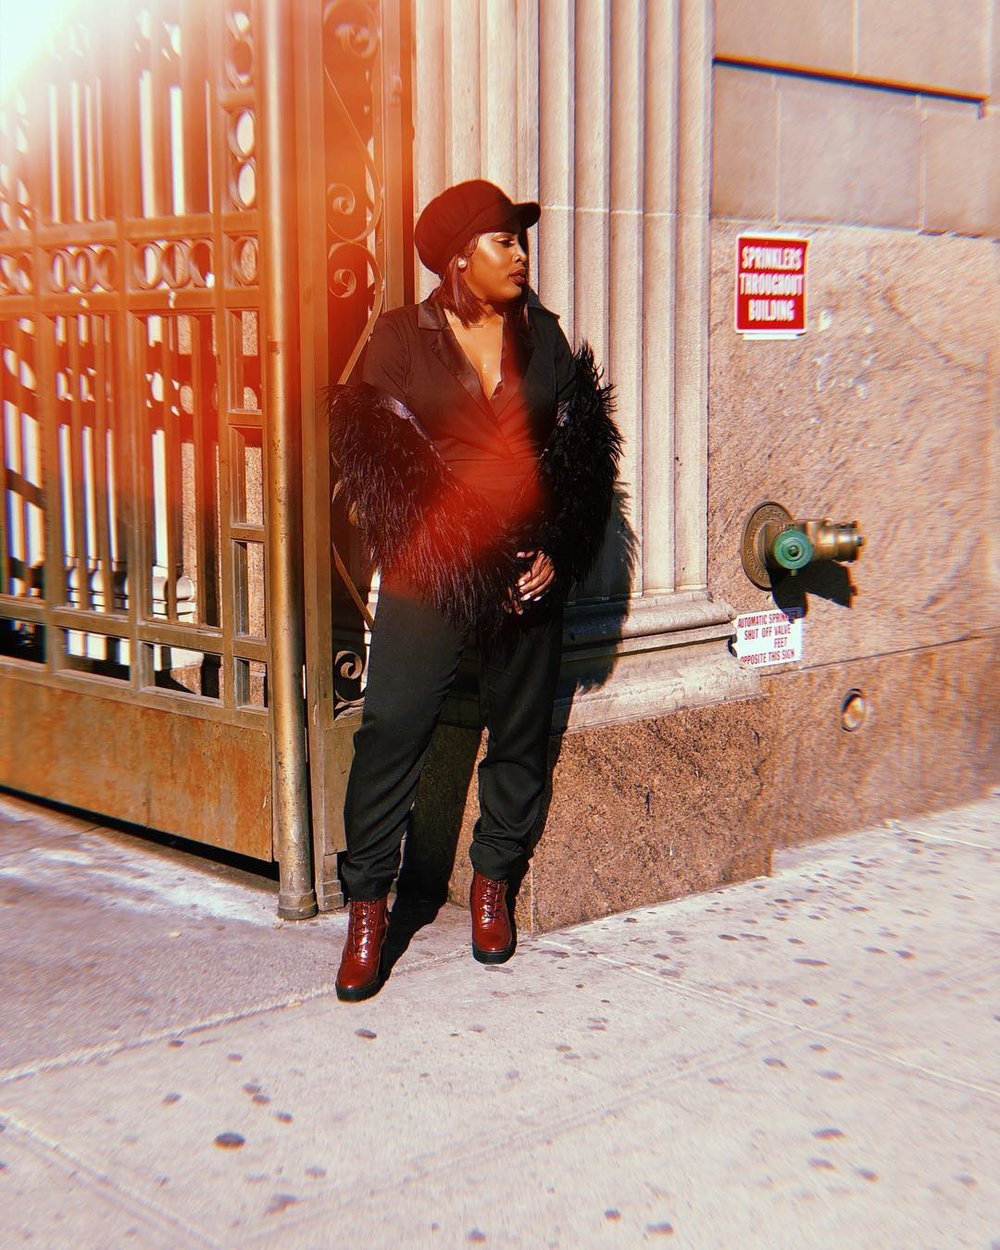 Sweet Brooklyn Bar2- Essence Sylvia Smith I Live FInESSe I Ess In The City I New York.png.jpg